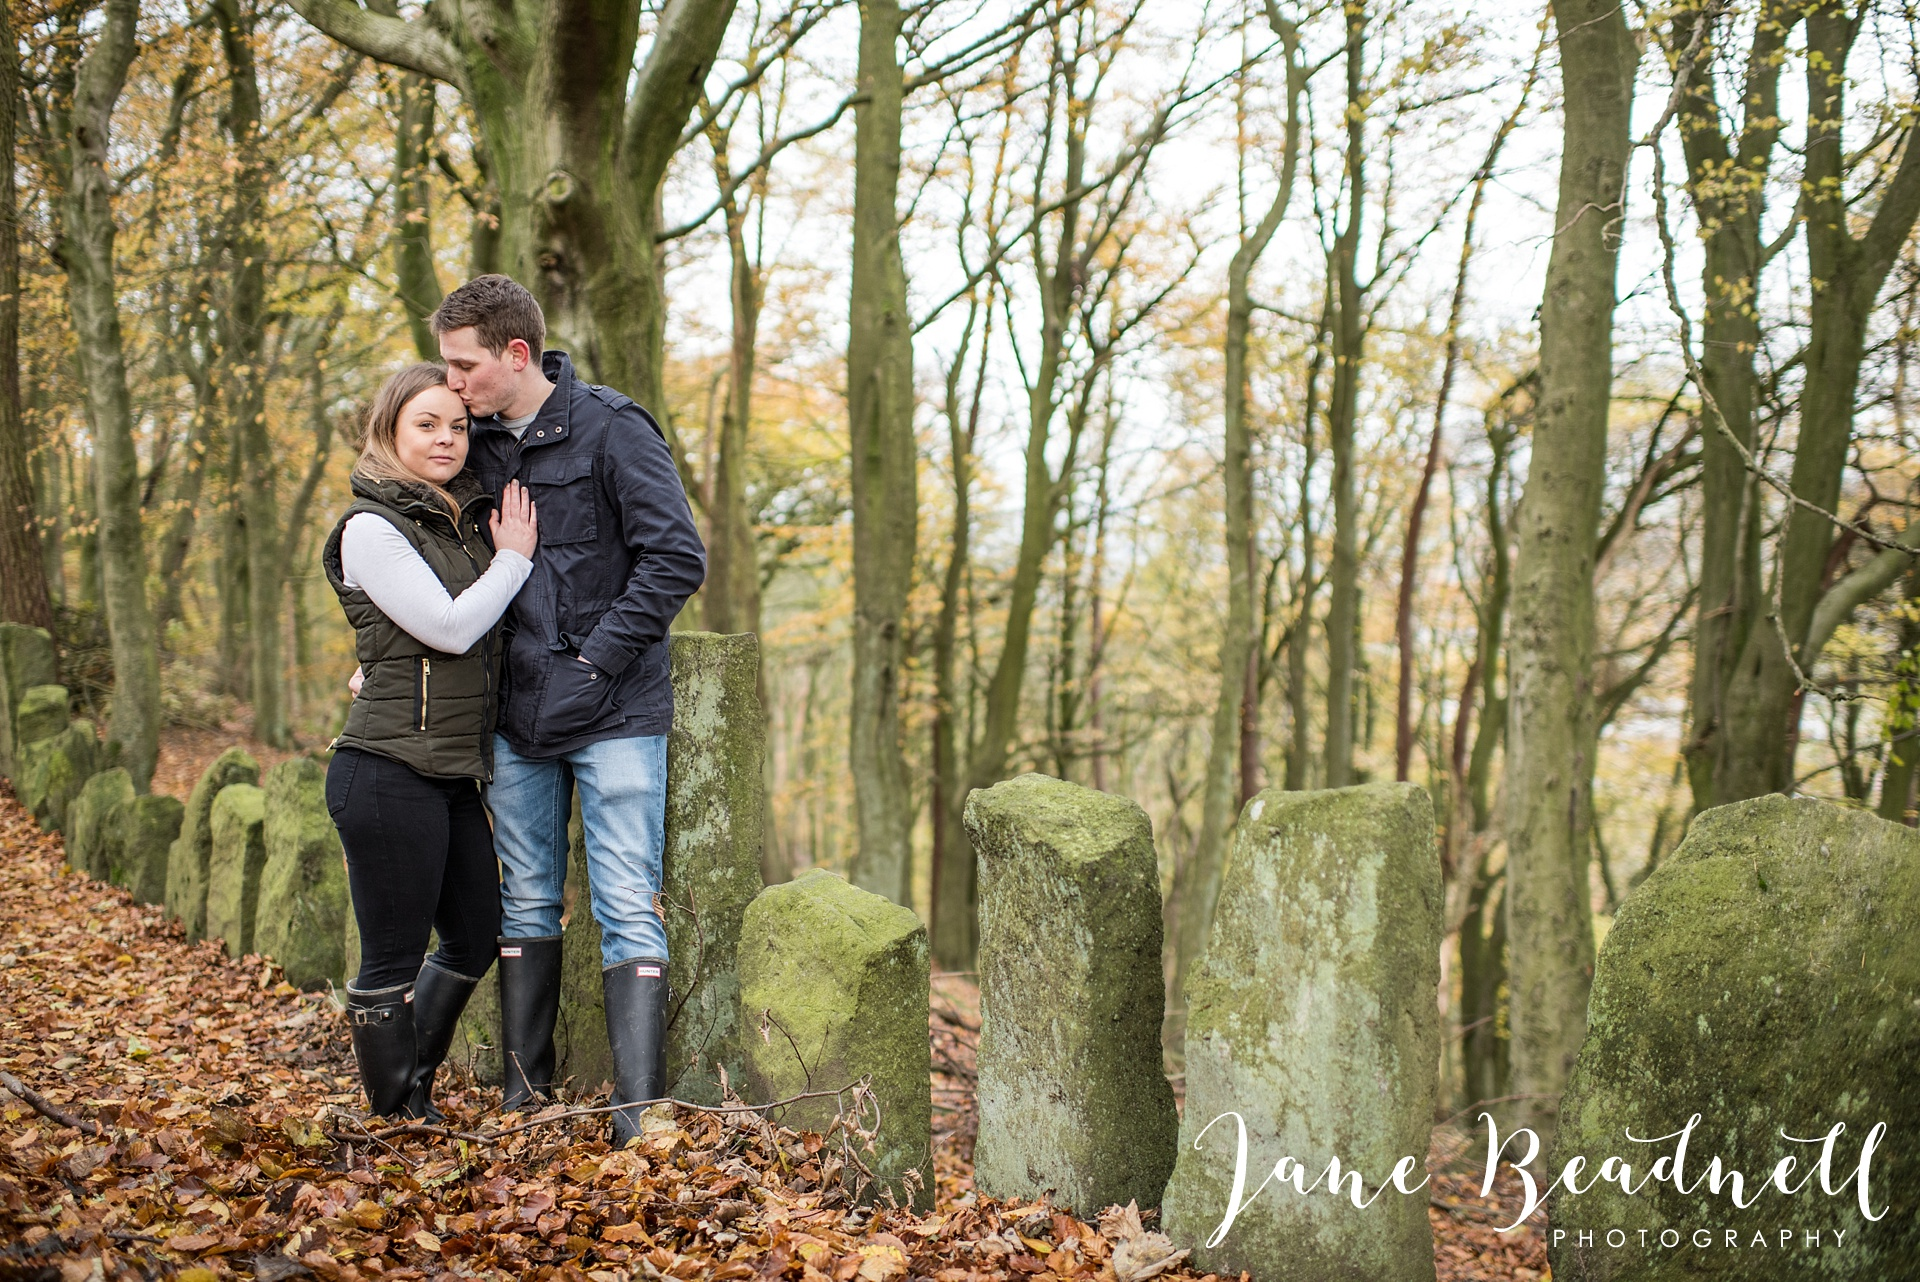 engagement-shoot-yorkshire-wedding-photographer-jane-beadnell-photography-uk-and-destination-wedding-photographer-engagement-shoot_0038